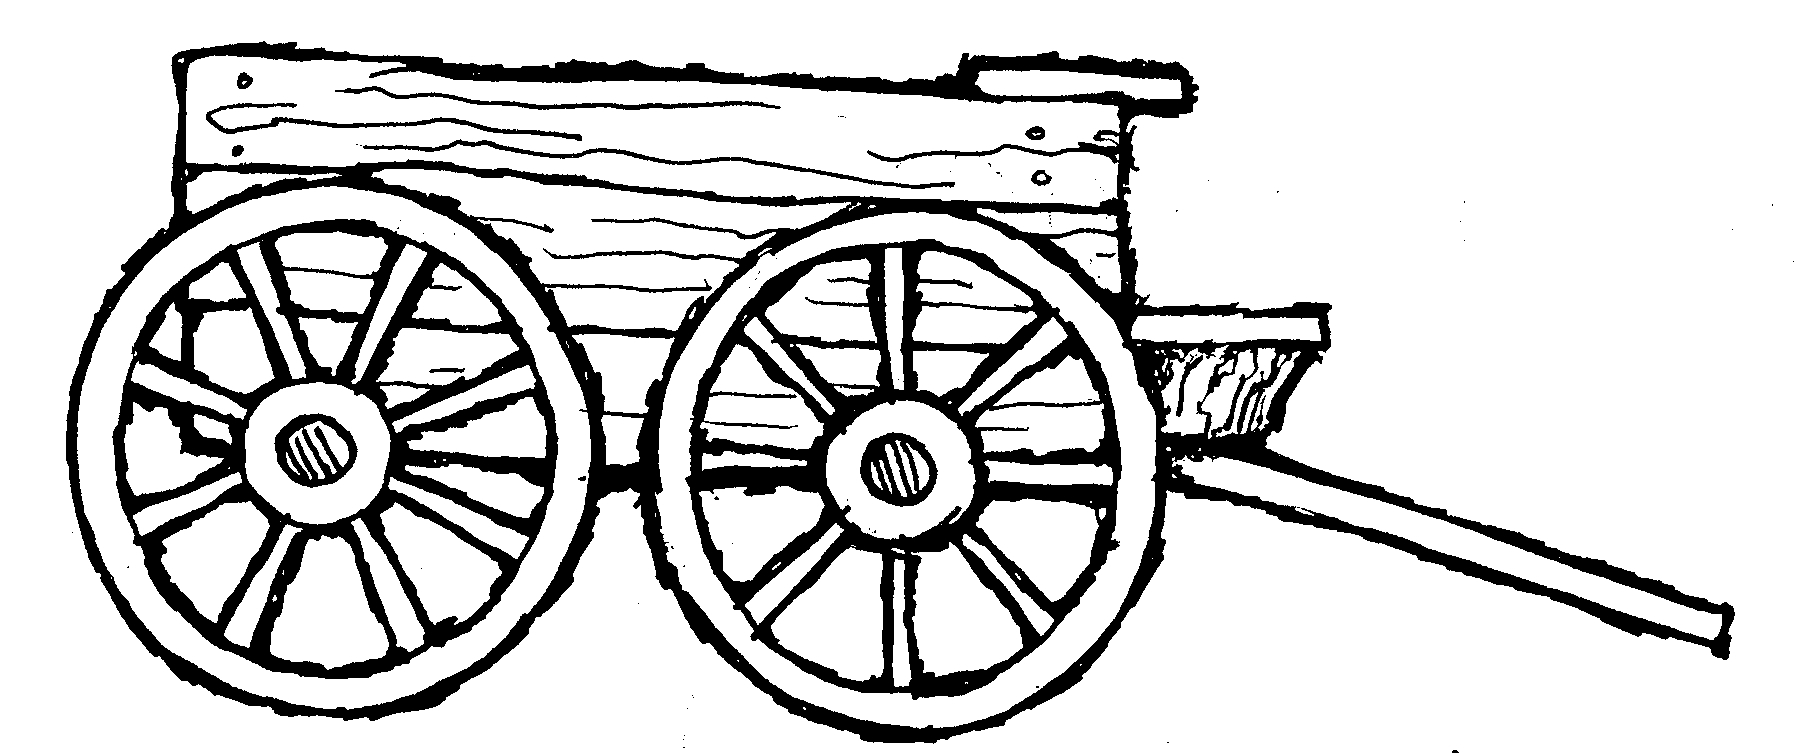 Covered wagon template clipart best for Wagon coloring pages